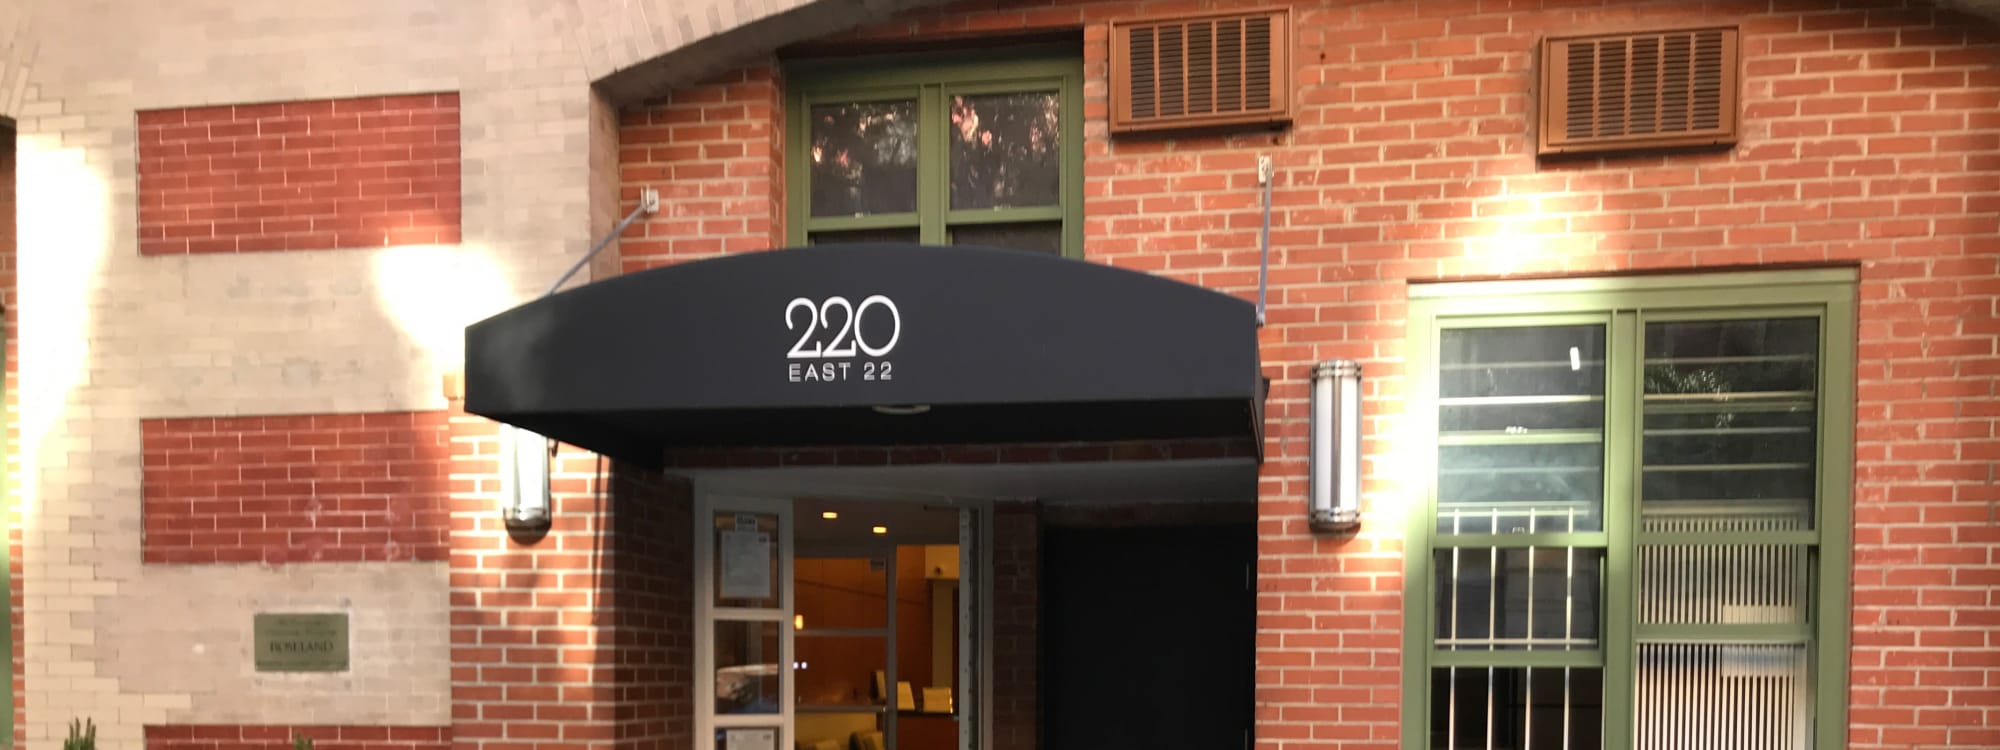 Schedule a tour at 210-220 E. 22nd Street in New York, New York